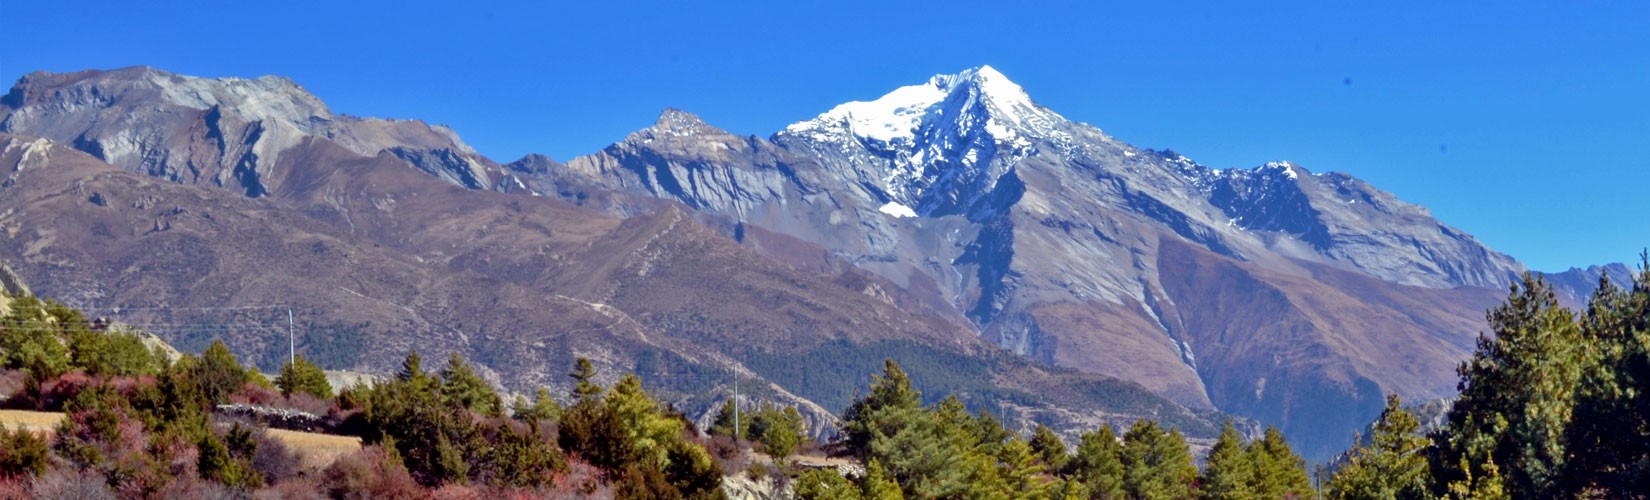 Among the peaks of Annapurana region, Pisang Peak is most popular among peak climbers. The hanging glaciers in the western part of the mountains are very challenging. The huge rock slabs at the western end makes the trip difficult for climbers.